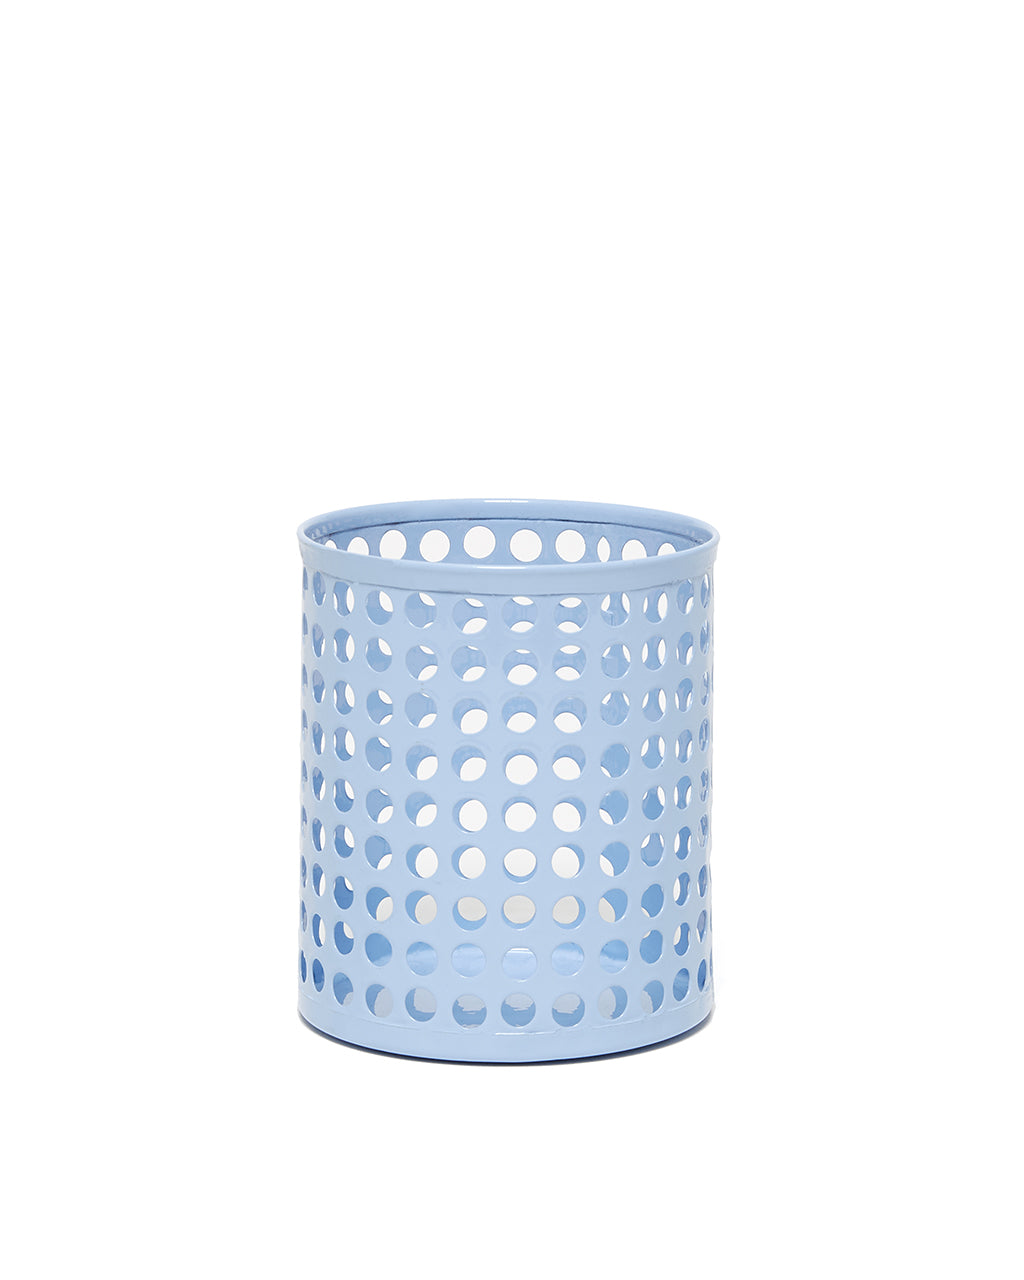 shopthelook_periwinkle pencil cup